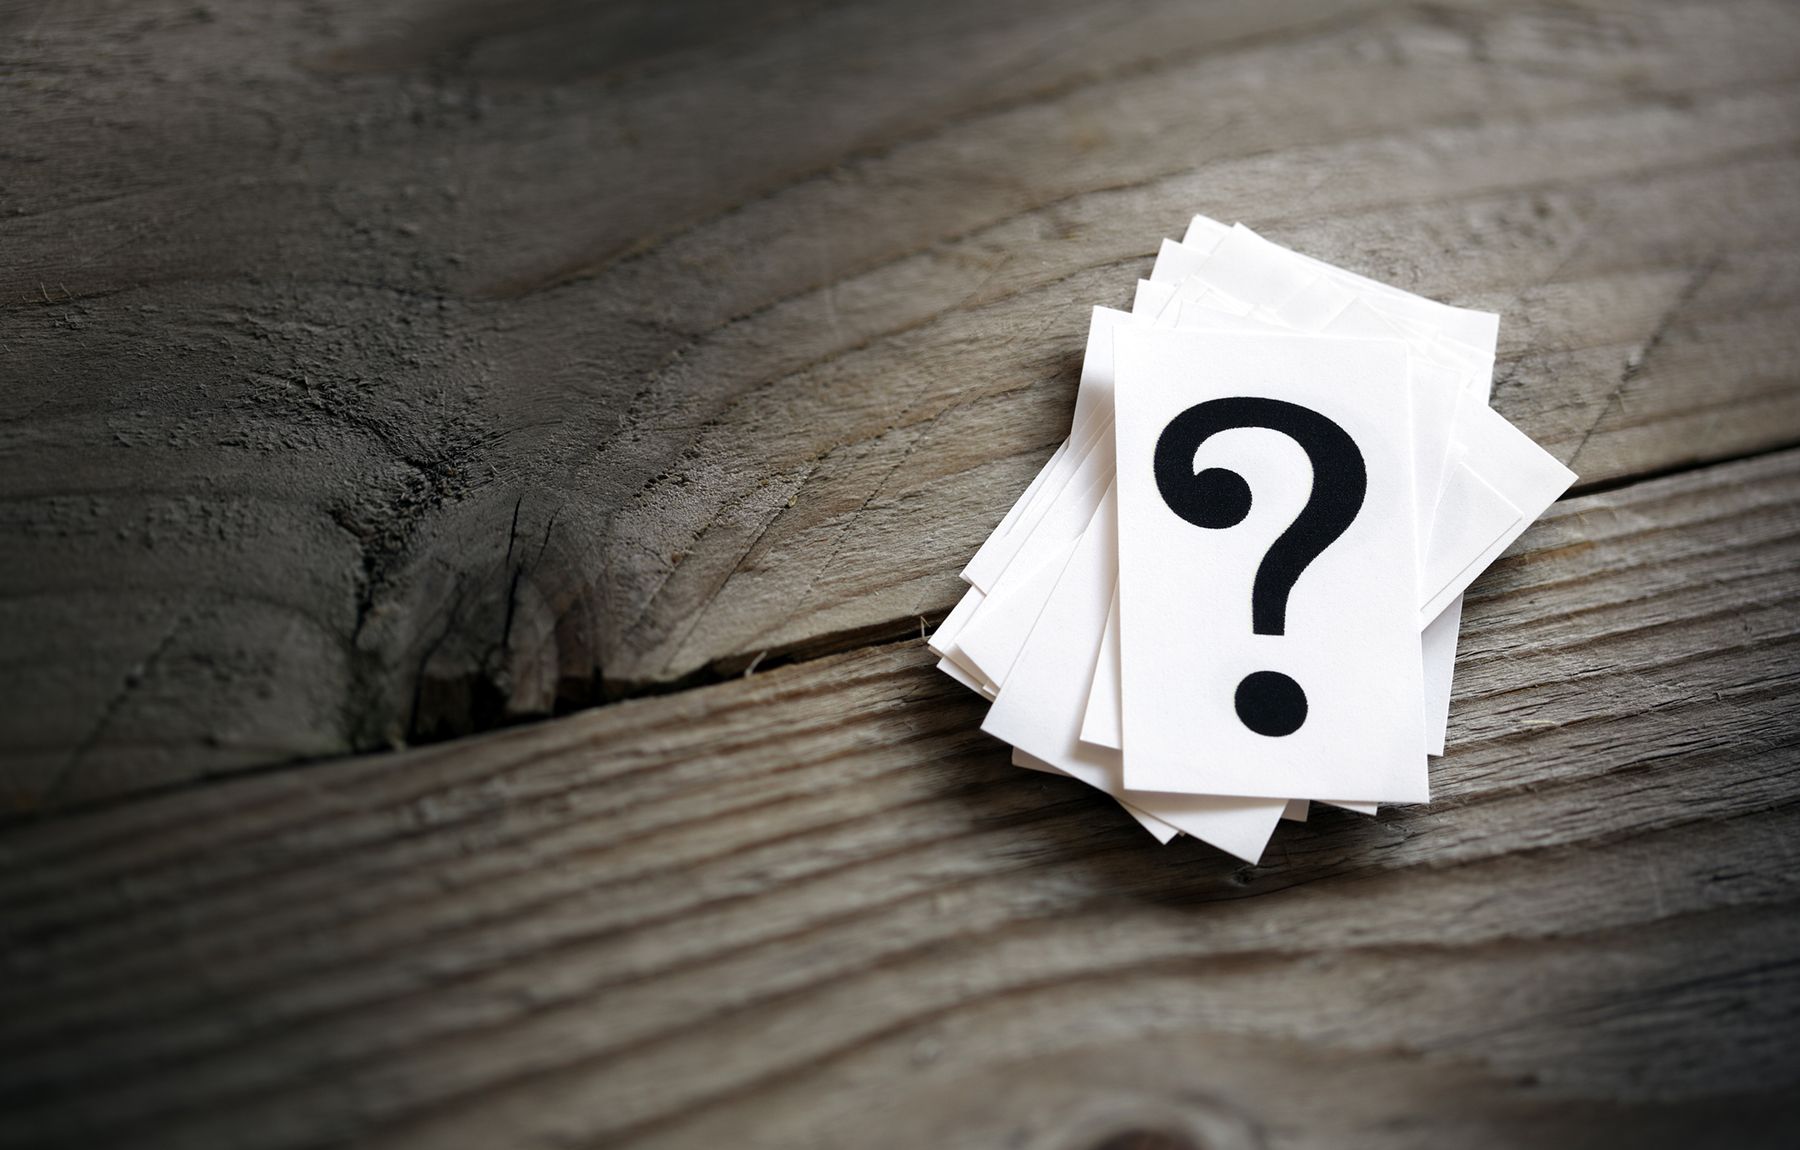 What To Do When You Question Those In Leadership Over You